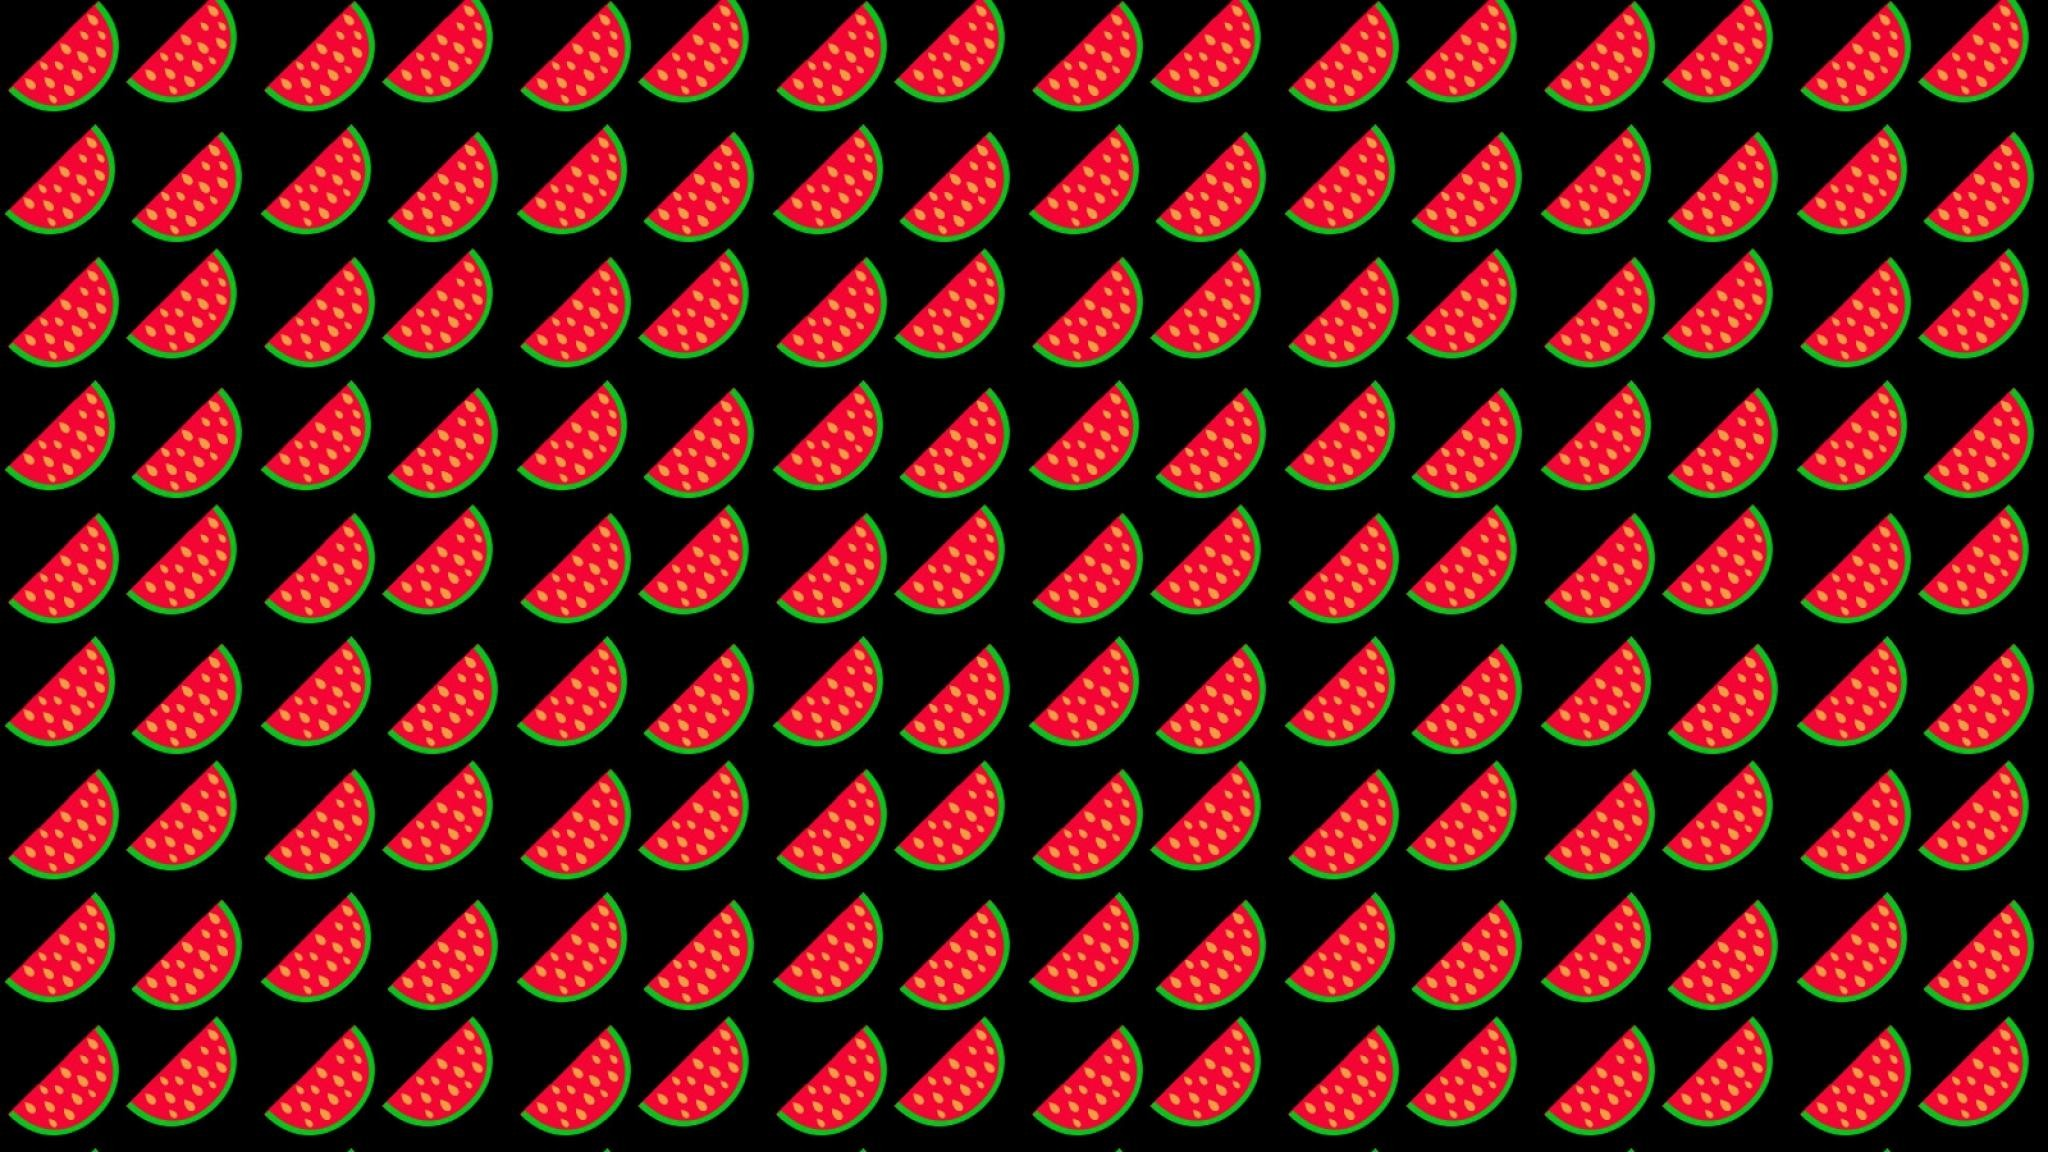 2048x1152 wallpaper.wiki-Watermelon-Images-PIC-WPE003765